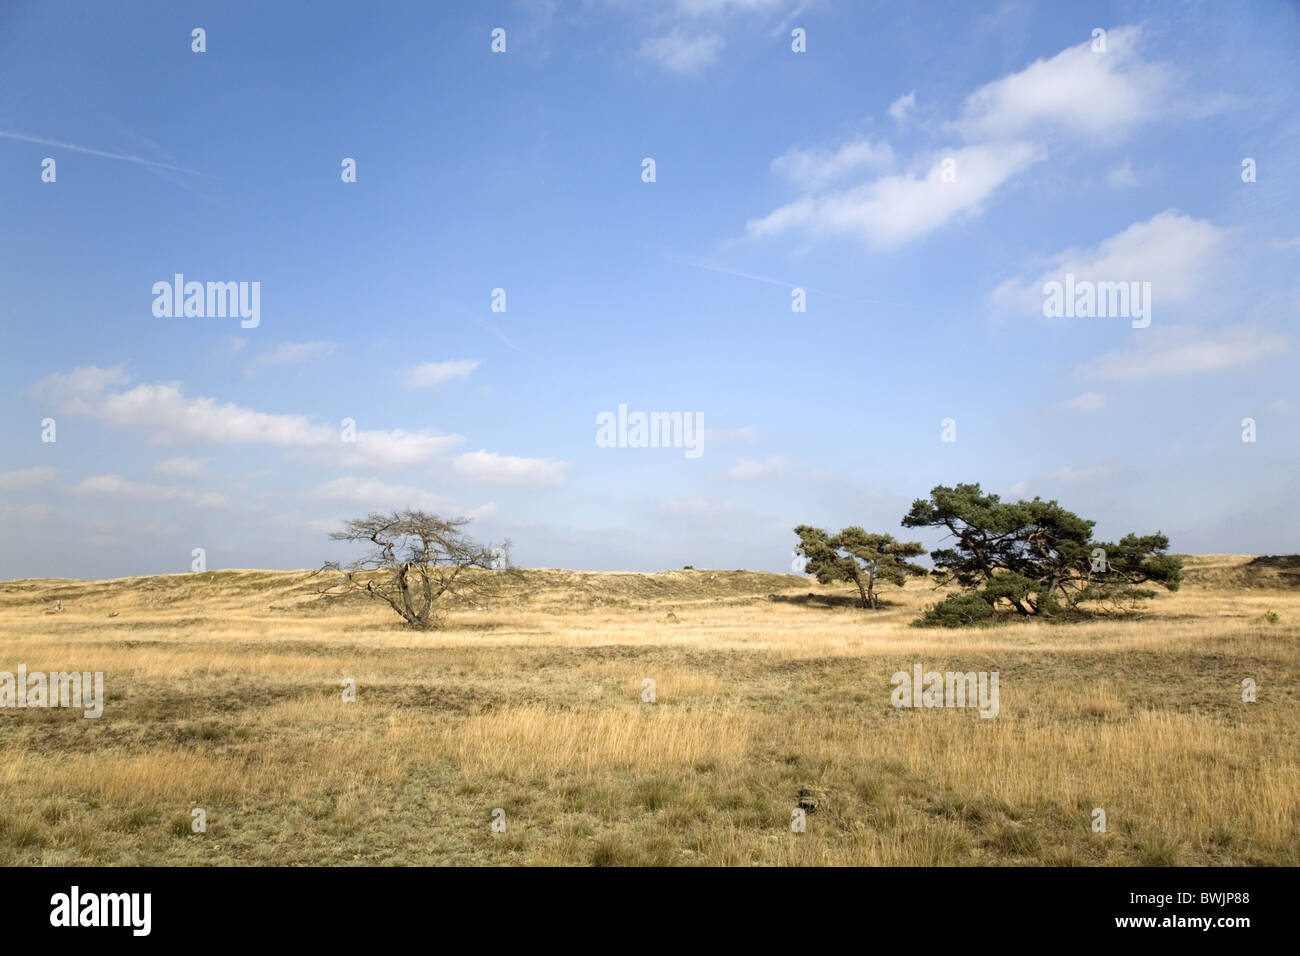 Landscape of the National Park Hoge Veluwe, Gelderland, Netherlands - Stock Image